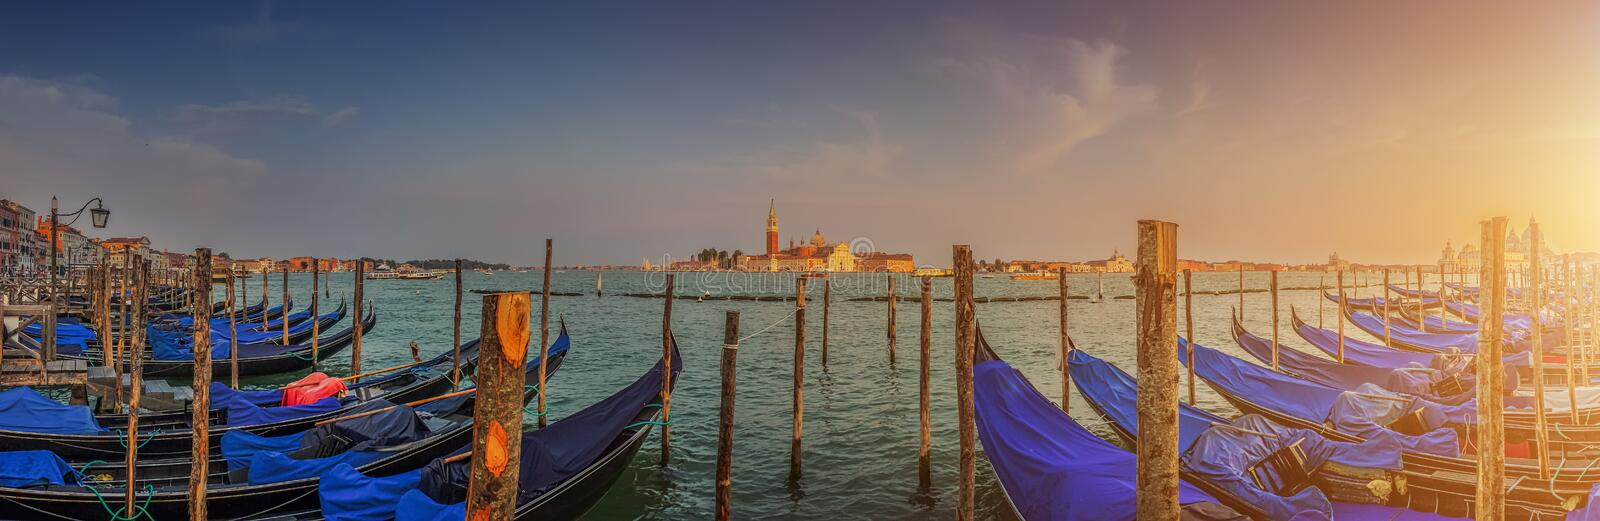 Gondolas on Canal Grande at sunset, San Marco, Venice, Italy royalty free stock image